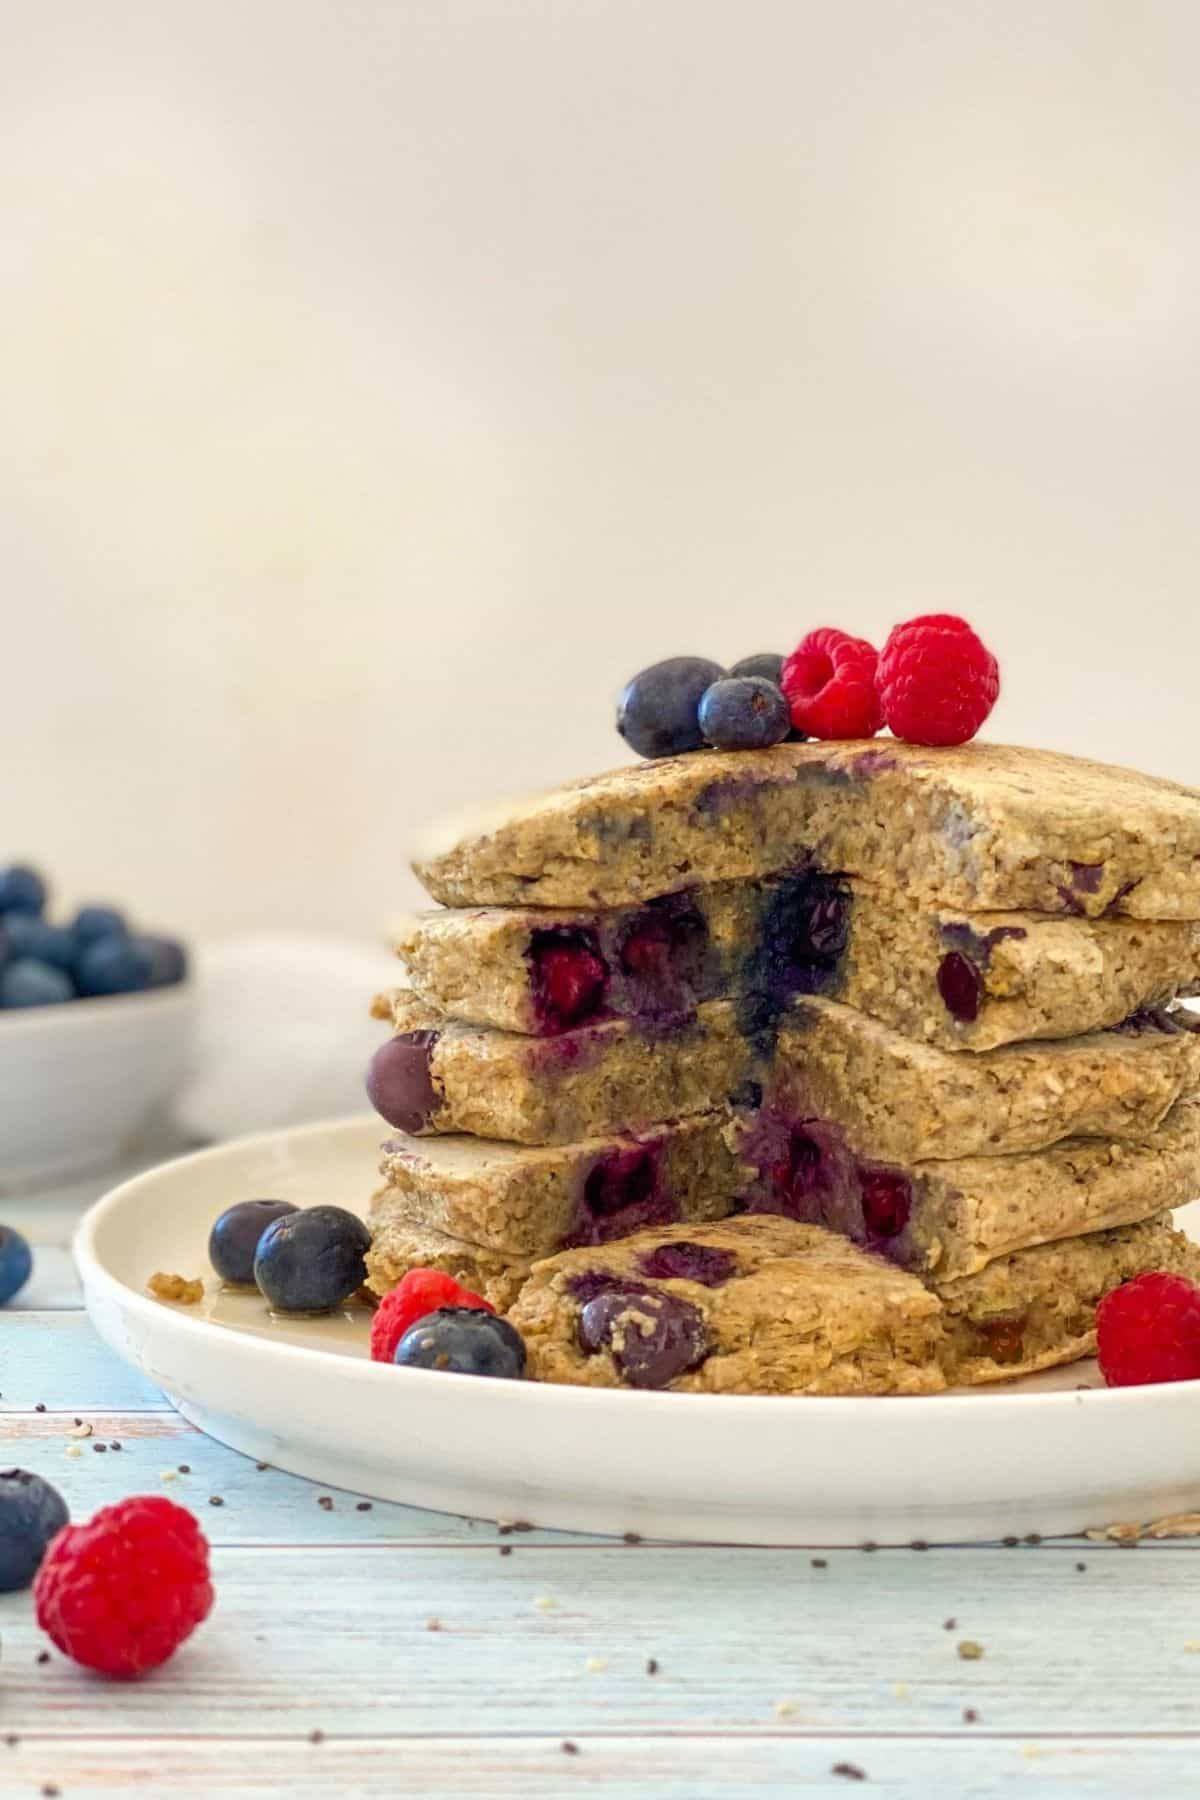 Stack of blueberry pancakes on white plate with triangular wedge cut out through the stack.